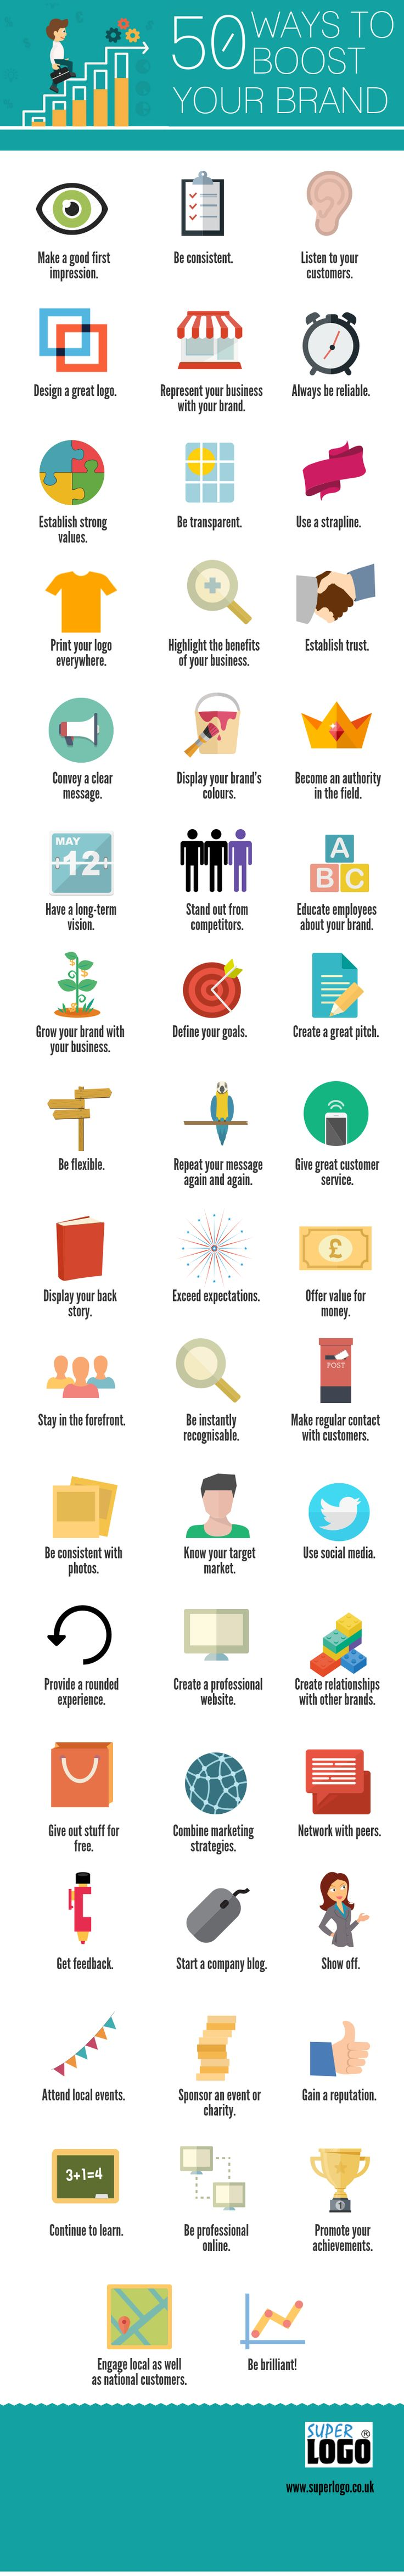 50 Ways to Build Your #Brand